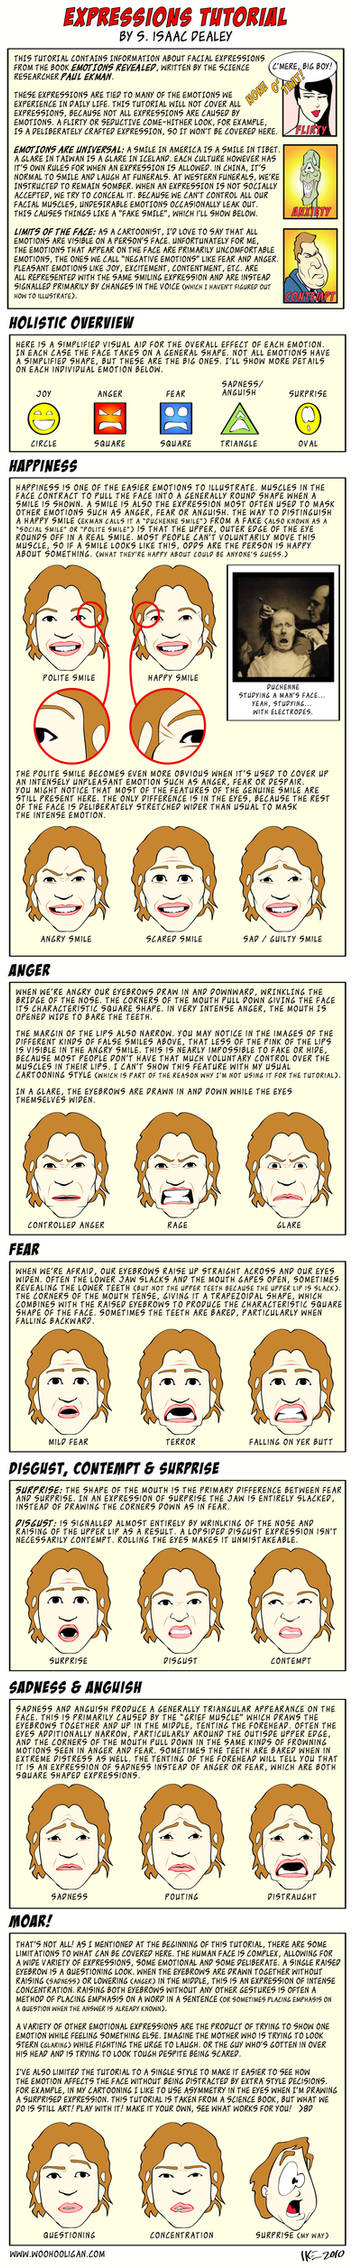 Expressions Tutorial